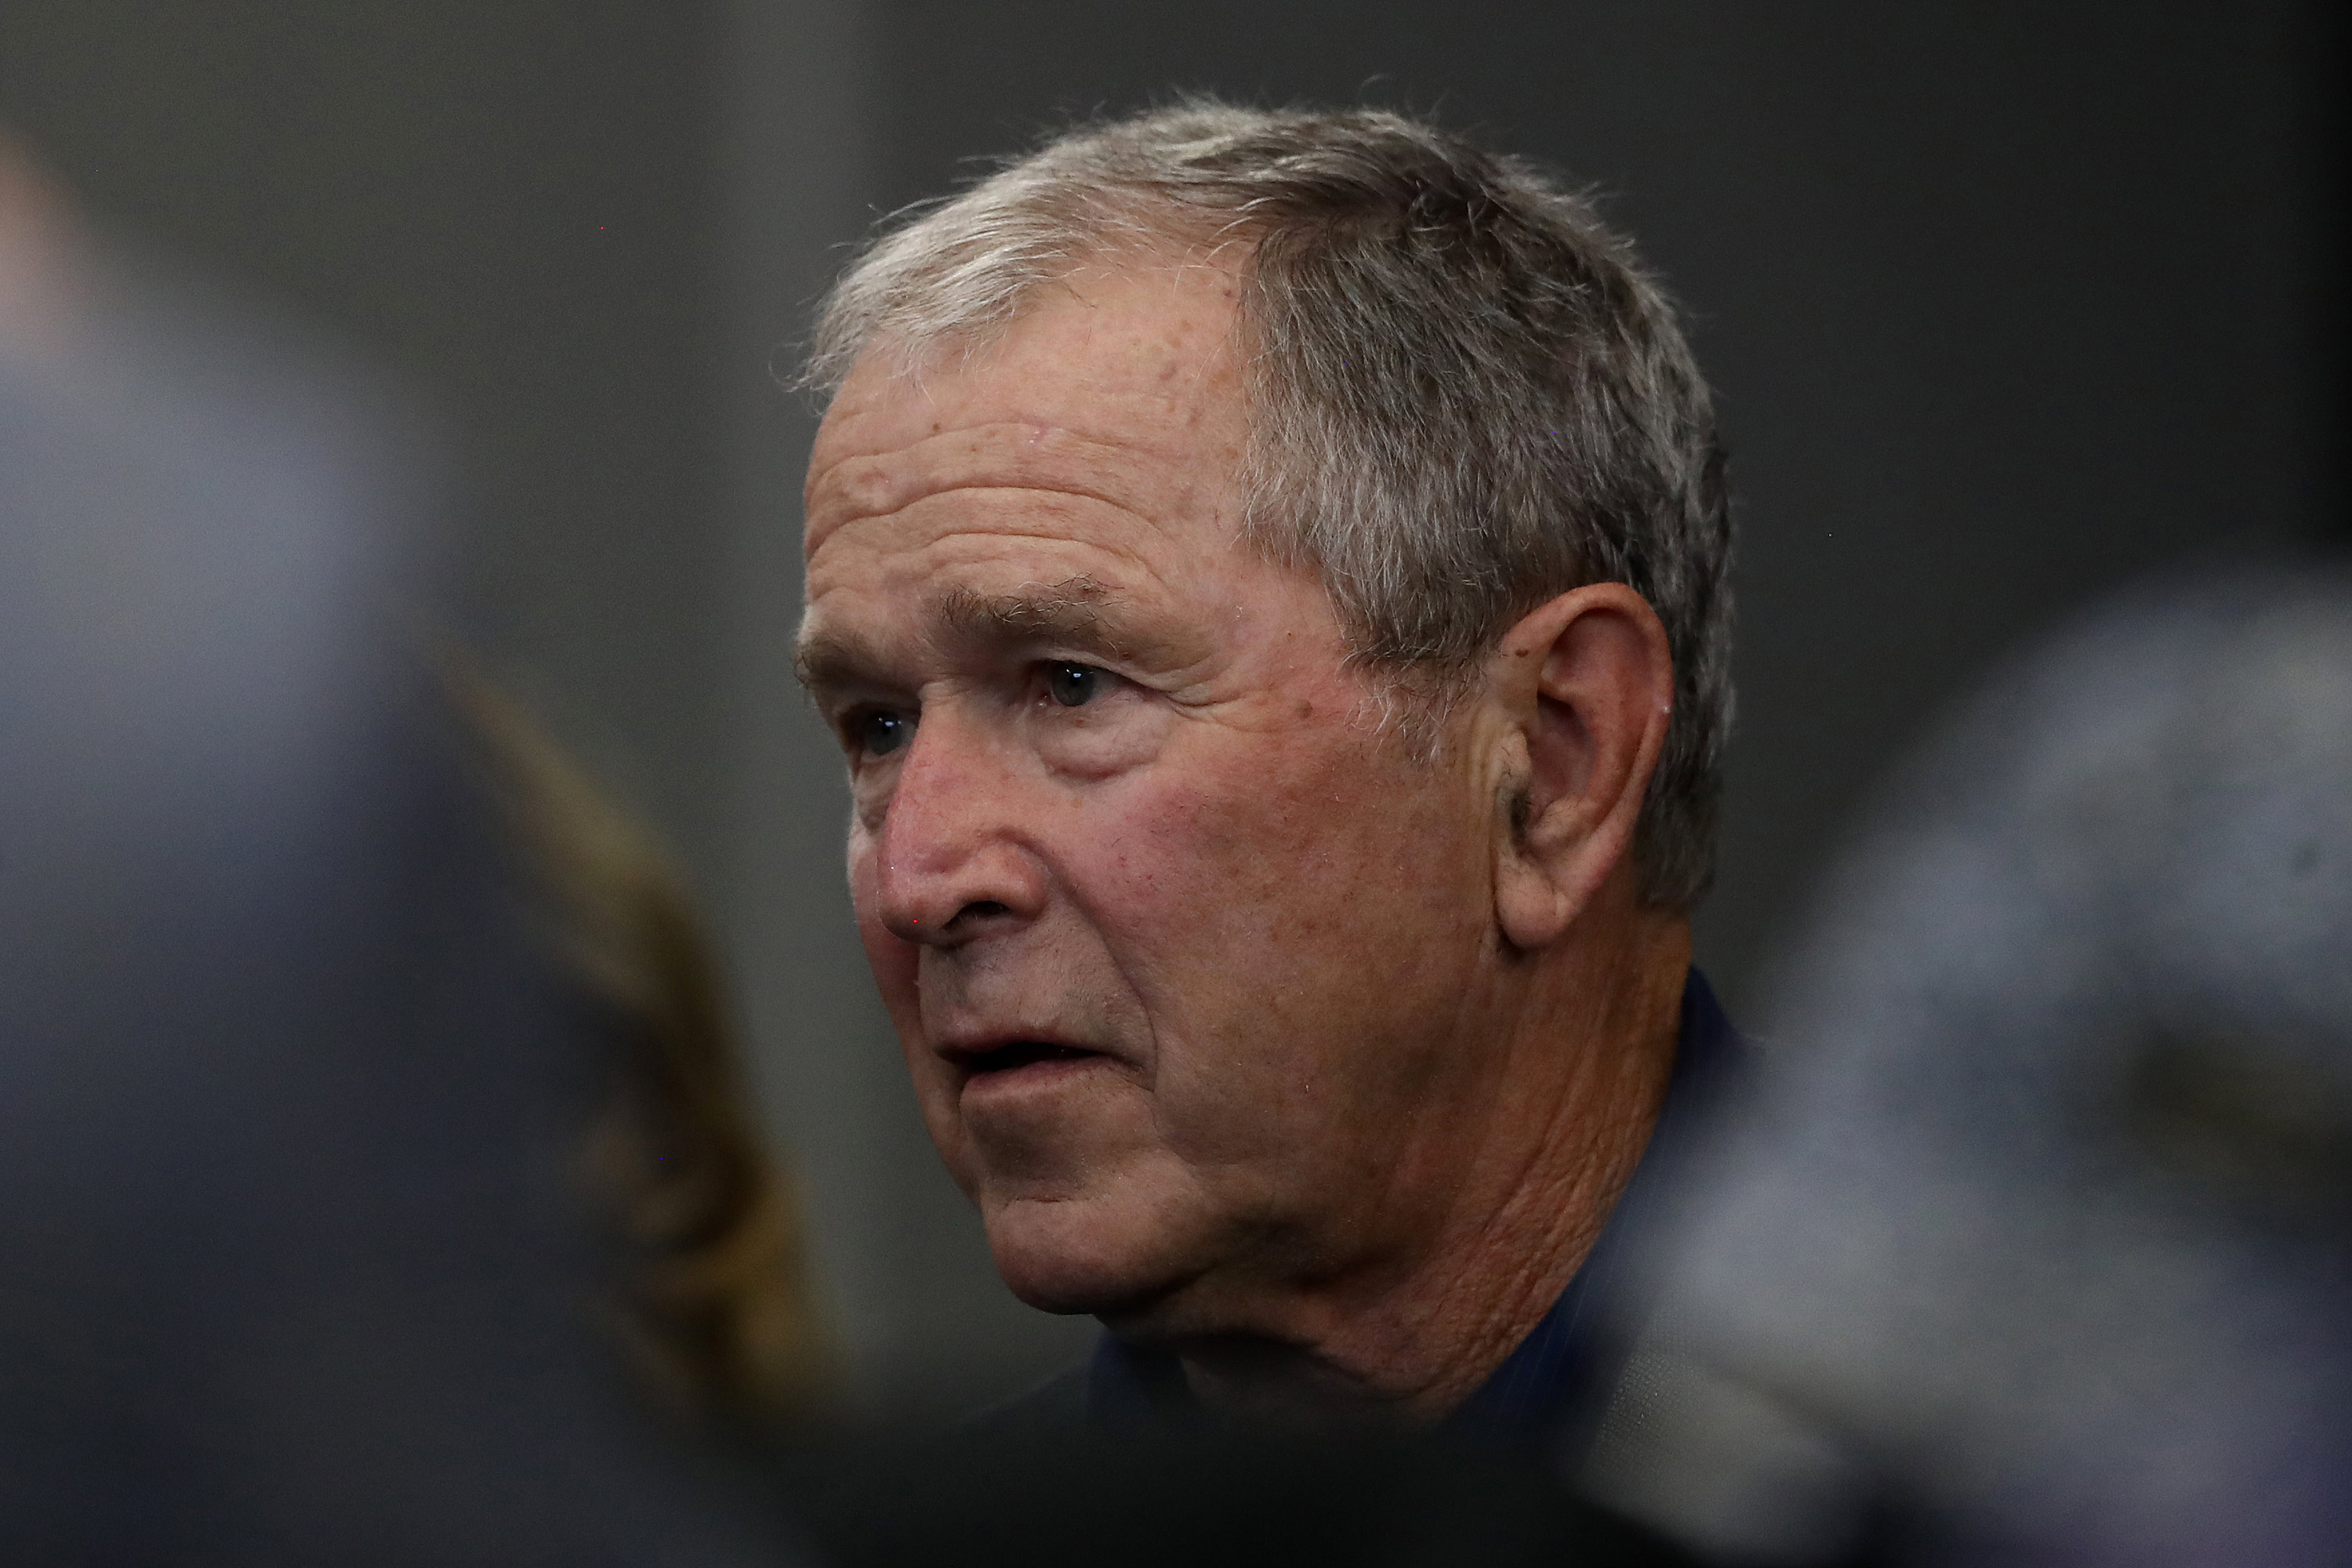 Bush calls on Congress to tone down 'harsh rhetoric' about immigration